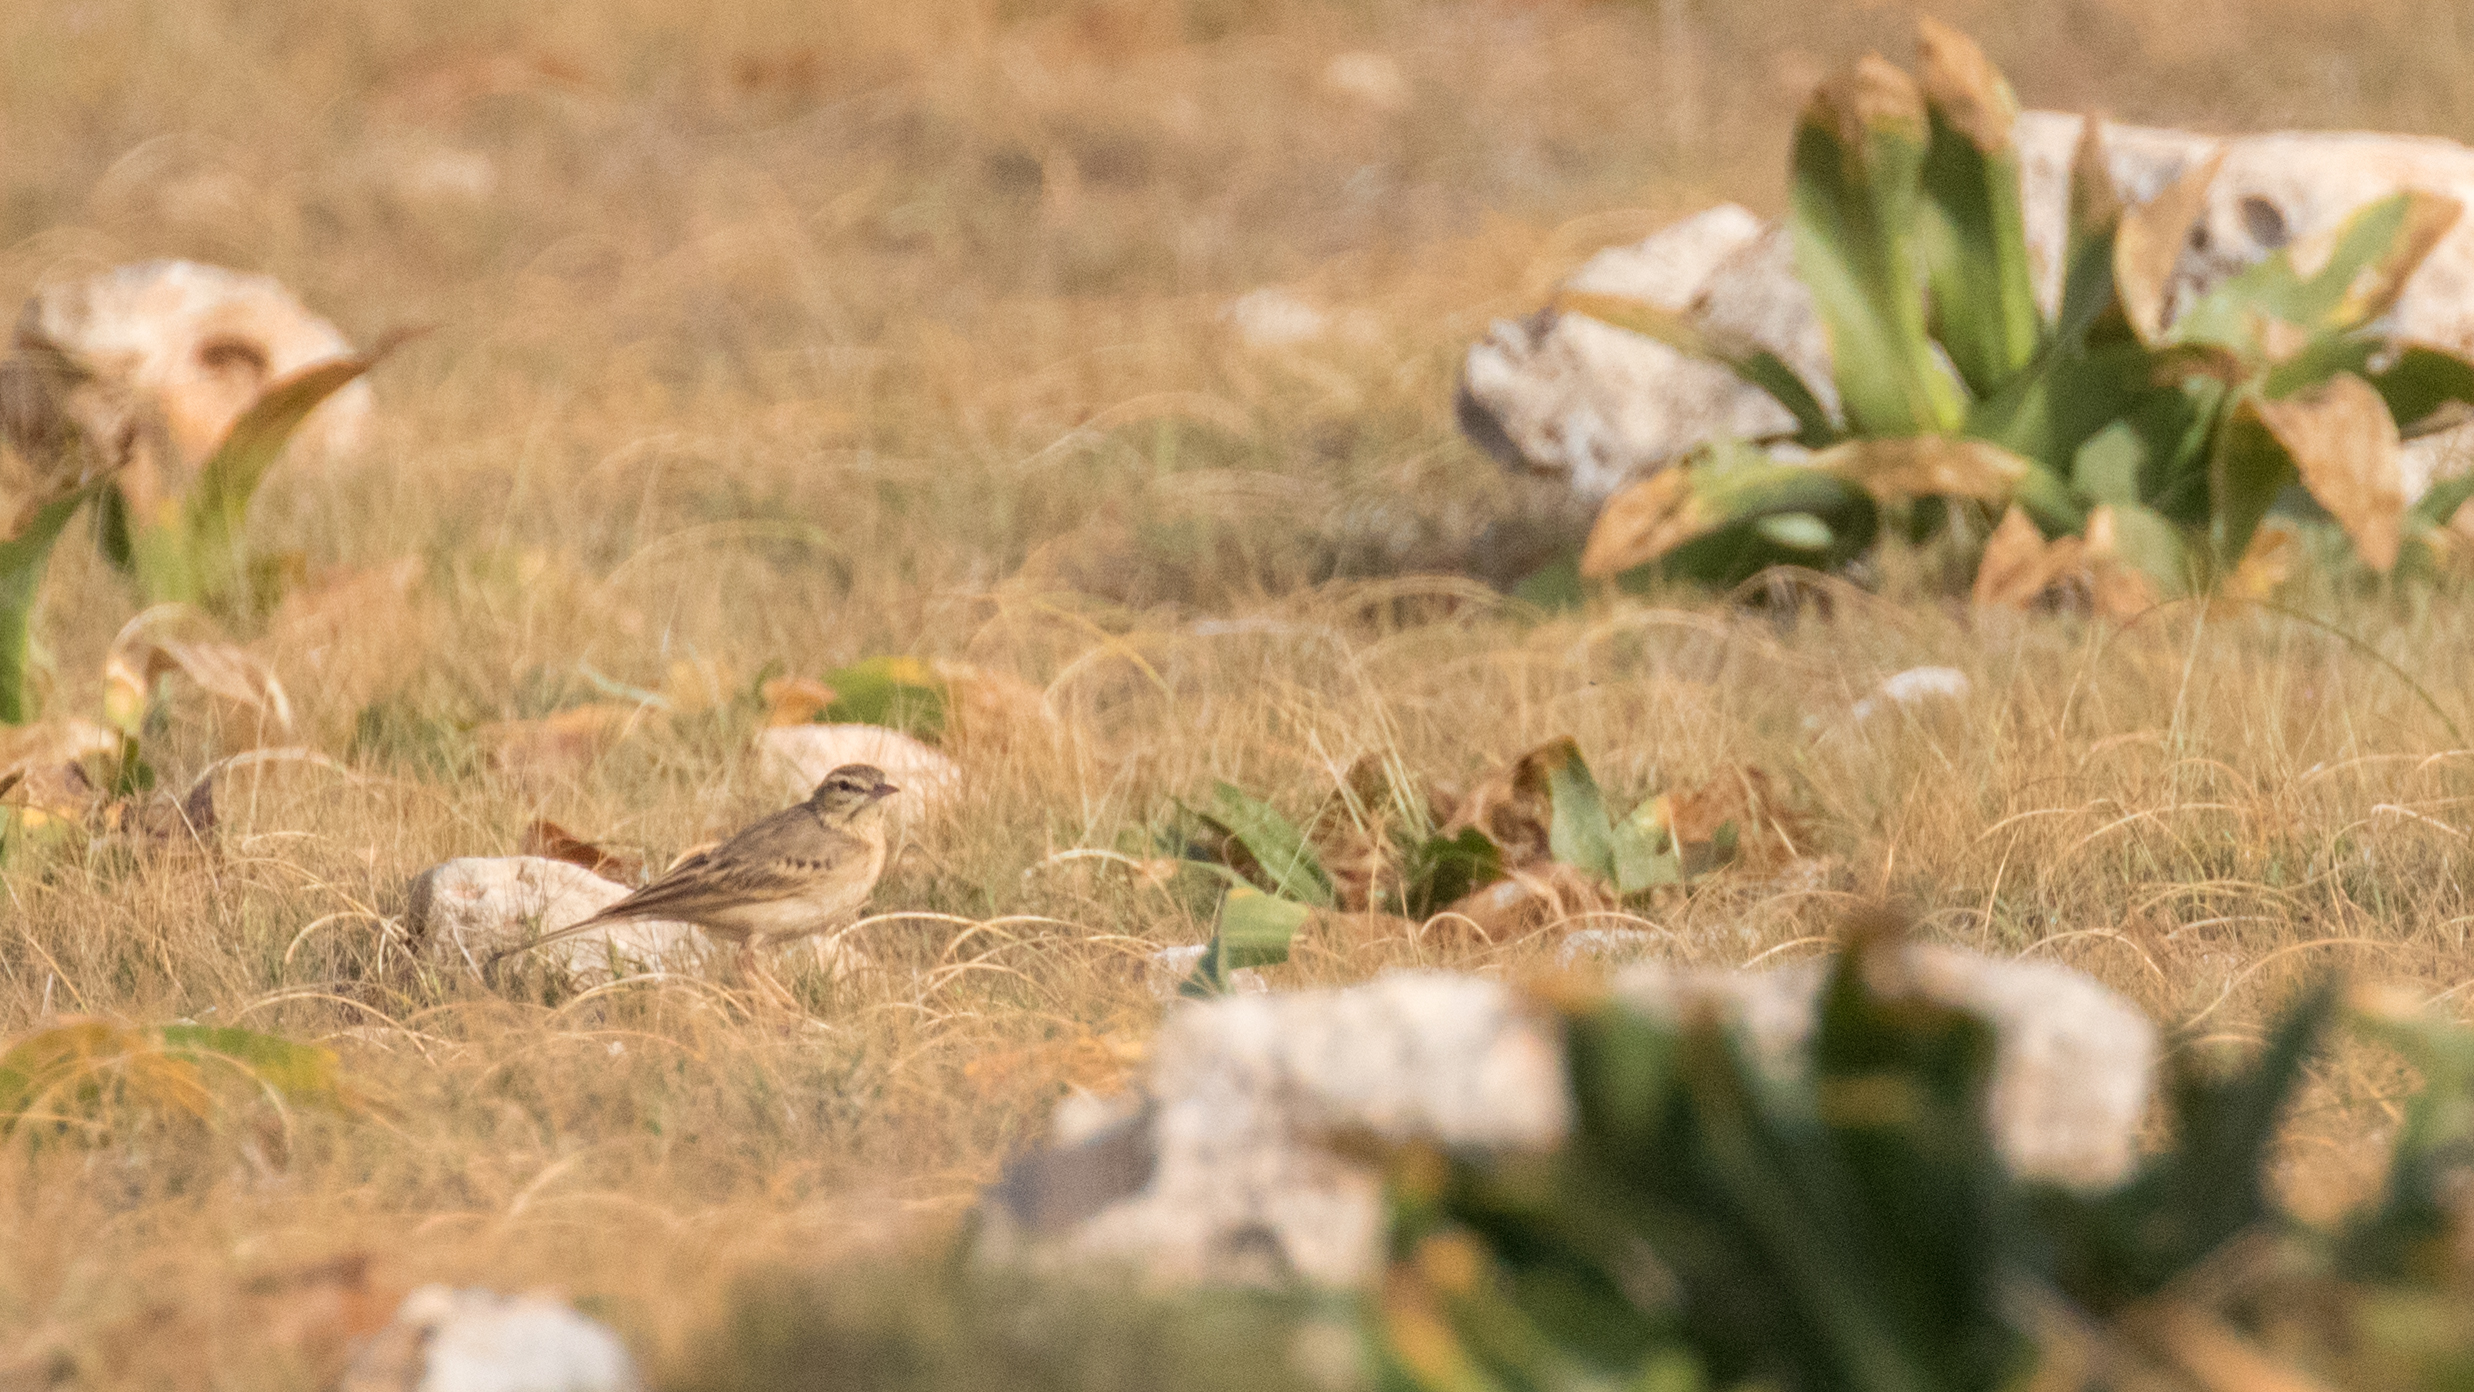 Tawny Pipit (Anthus campestris) spotted in Malta. April 2016. Not baited. Not called in.